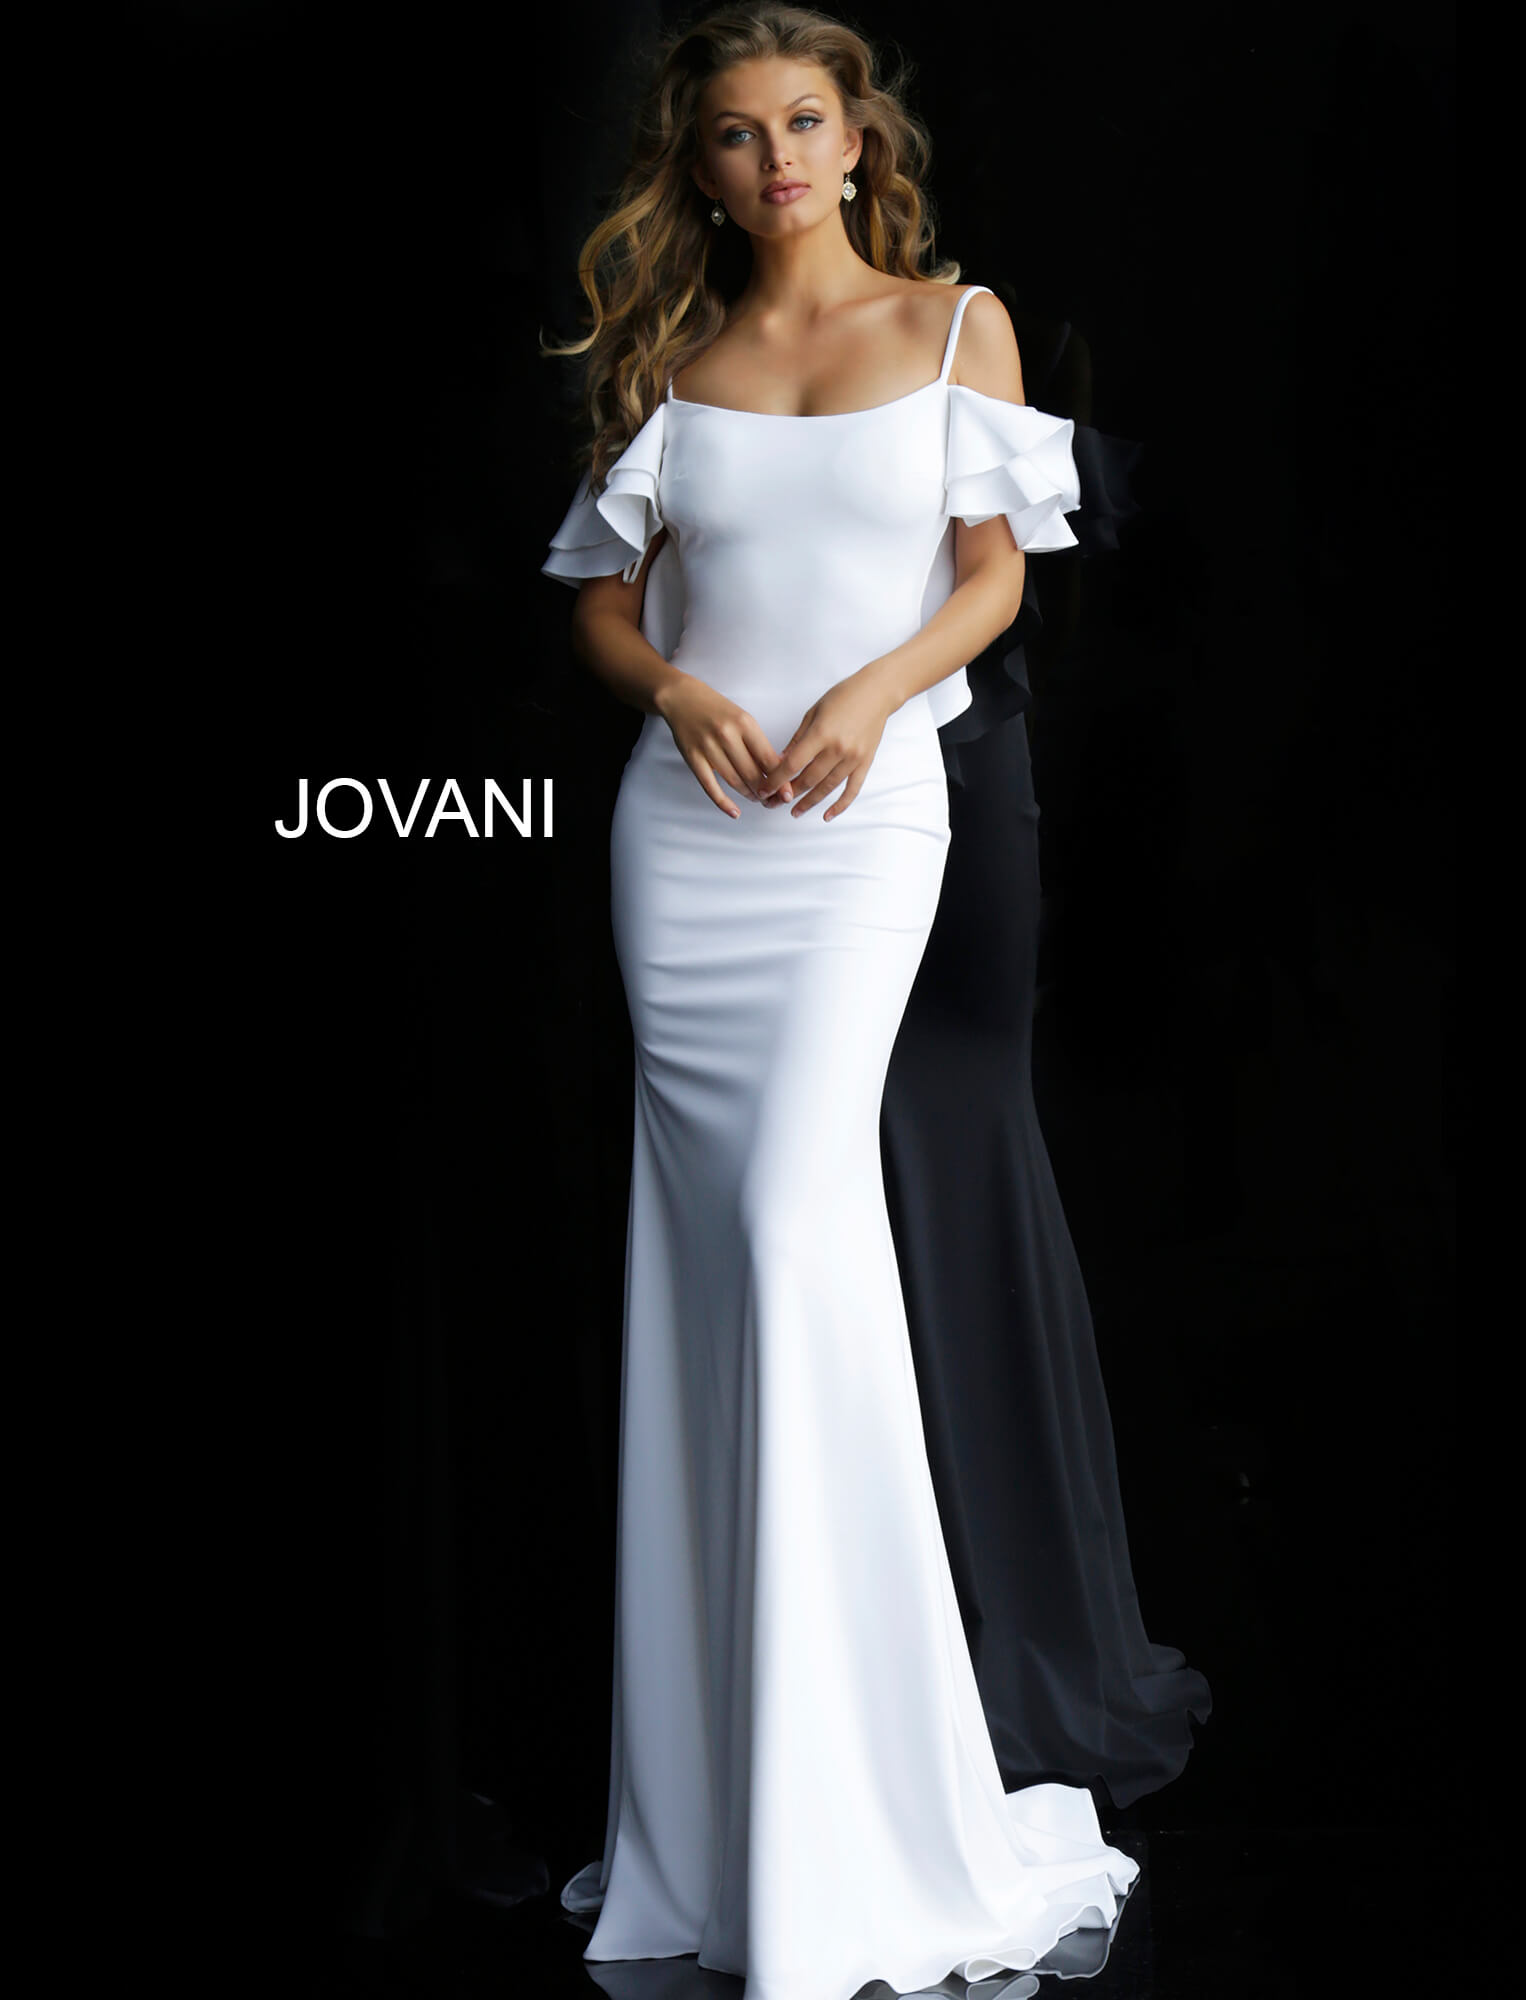 Jovani 59248 Off White Fitted Off The Shoulder Dress